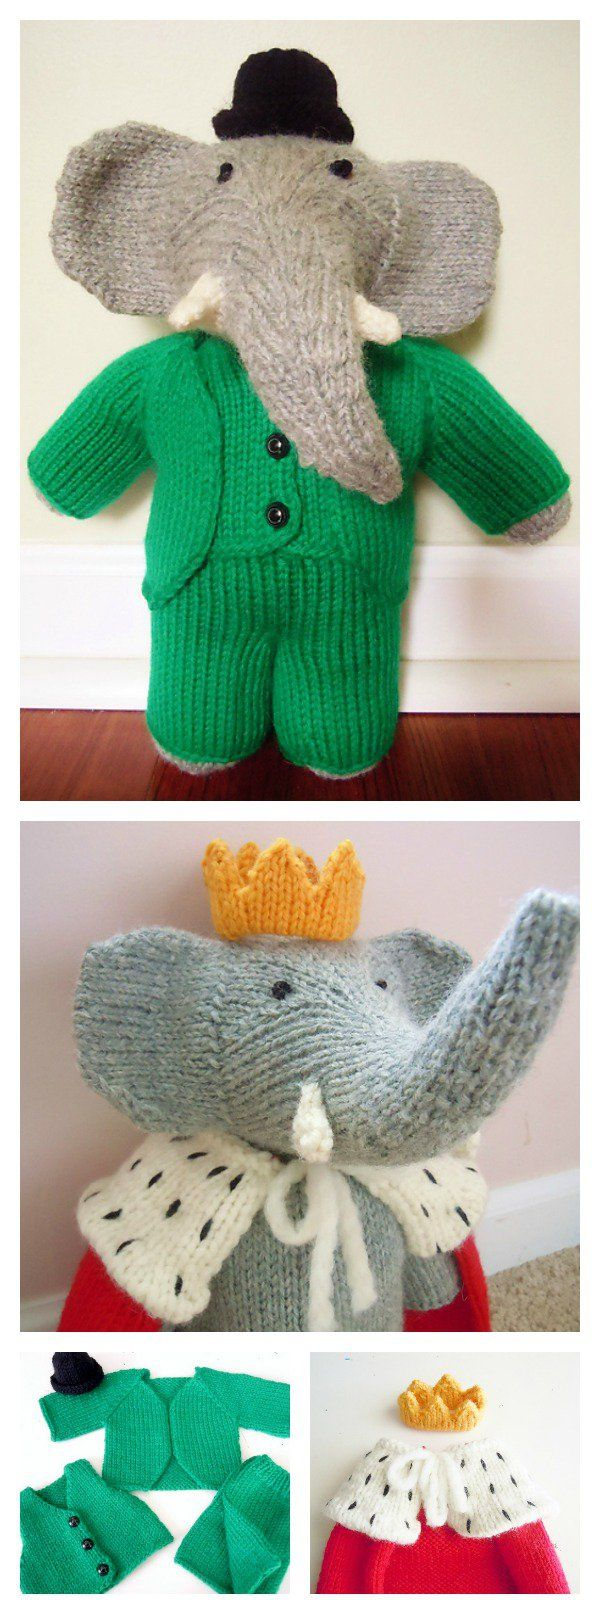 Free Elephant Knitting Pattern : 17 Best images about Knitting on Pinterest Free pattern, Ankle socks and Shawl